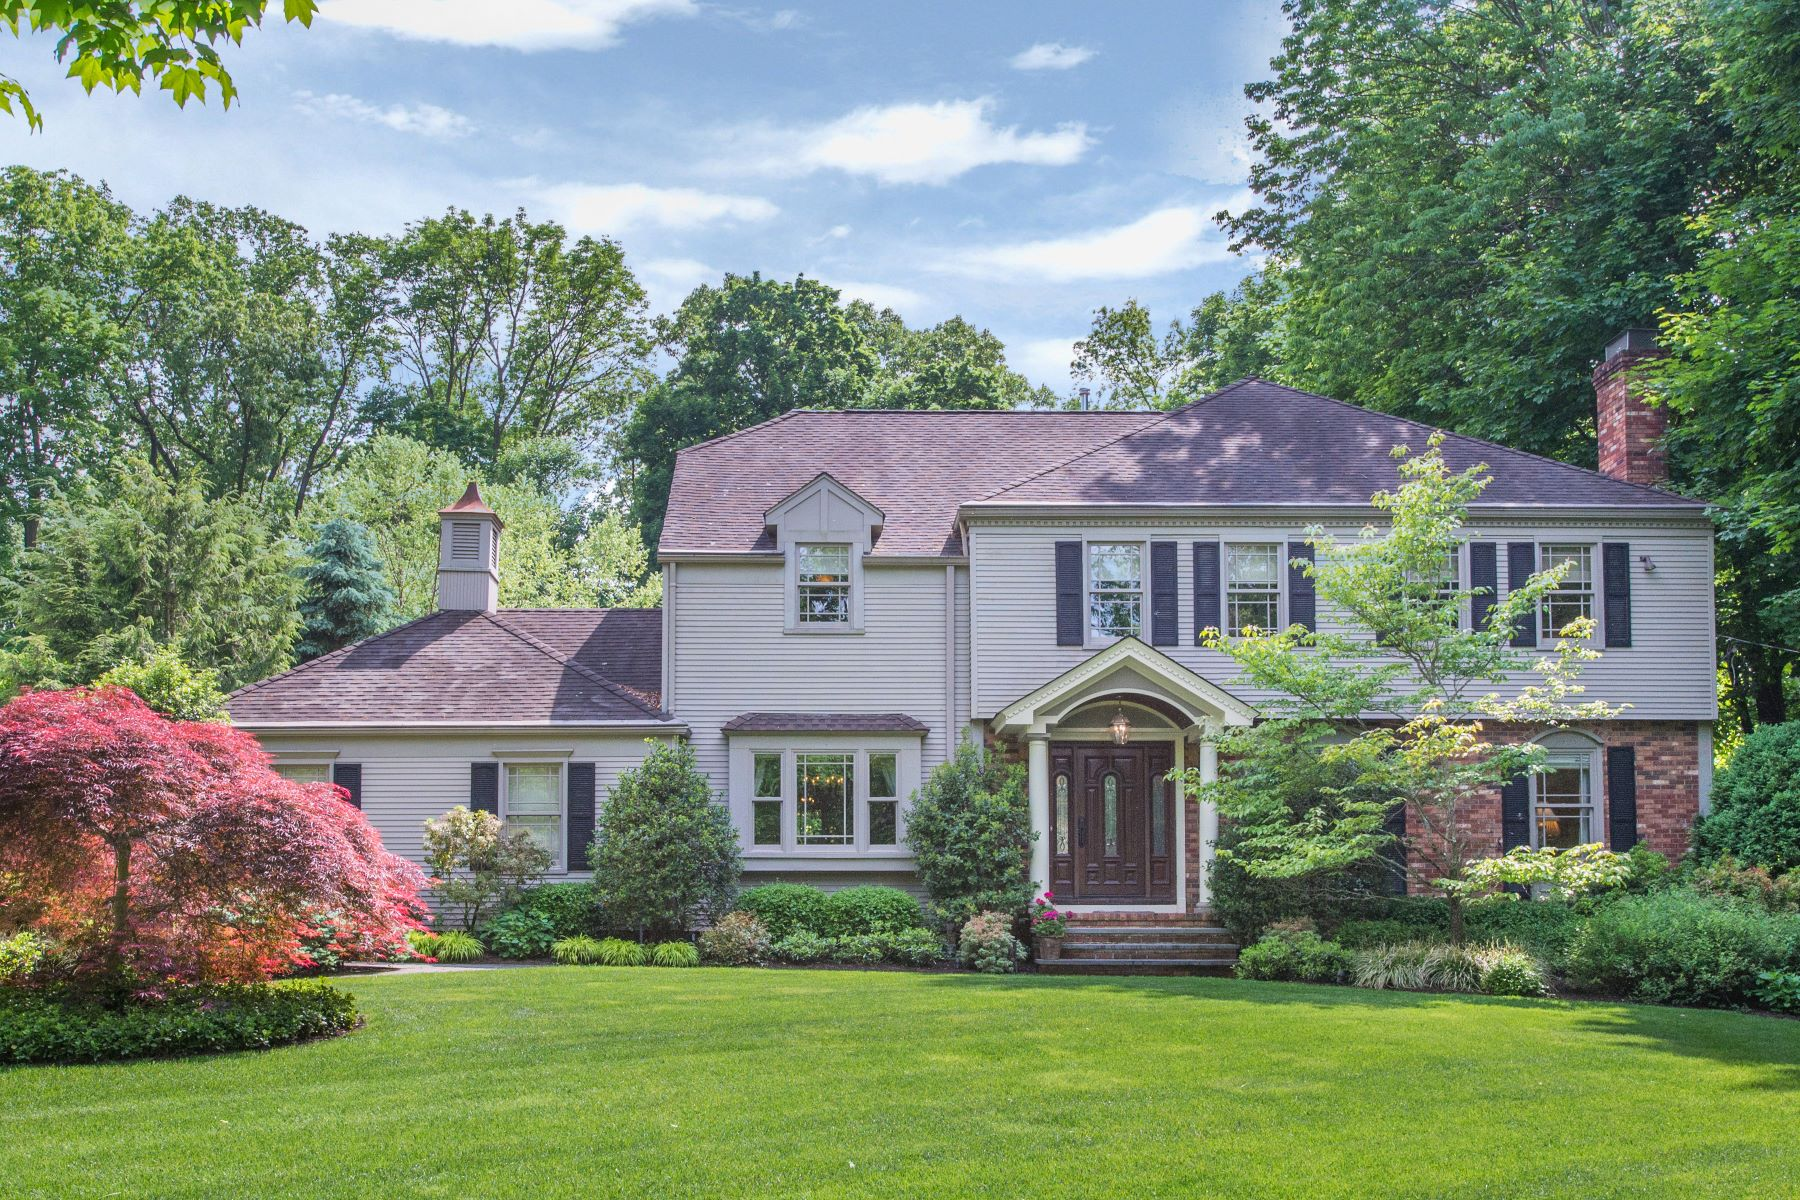 Single Family Homes for Active at Extraordinary Custom Colonial 7 Easley Terrace Morris Township, New Jersey 07960 United States